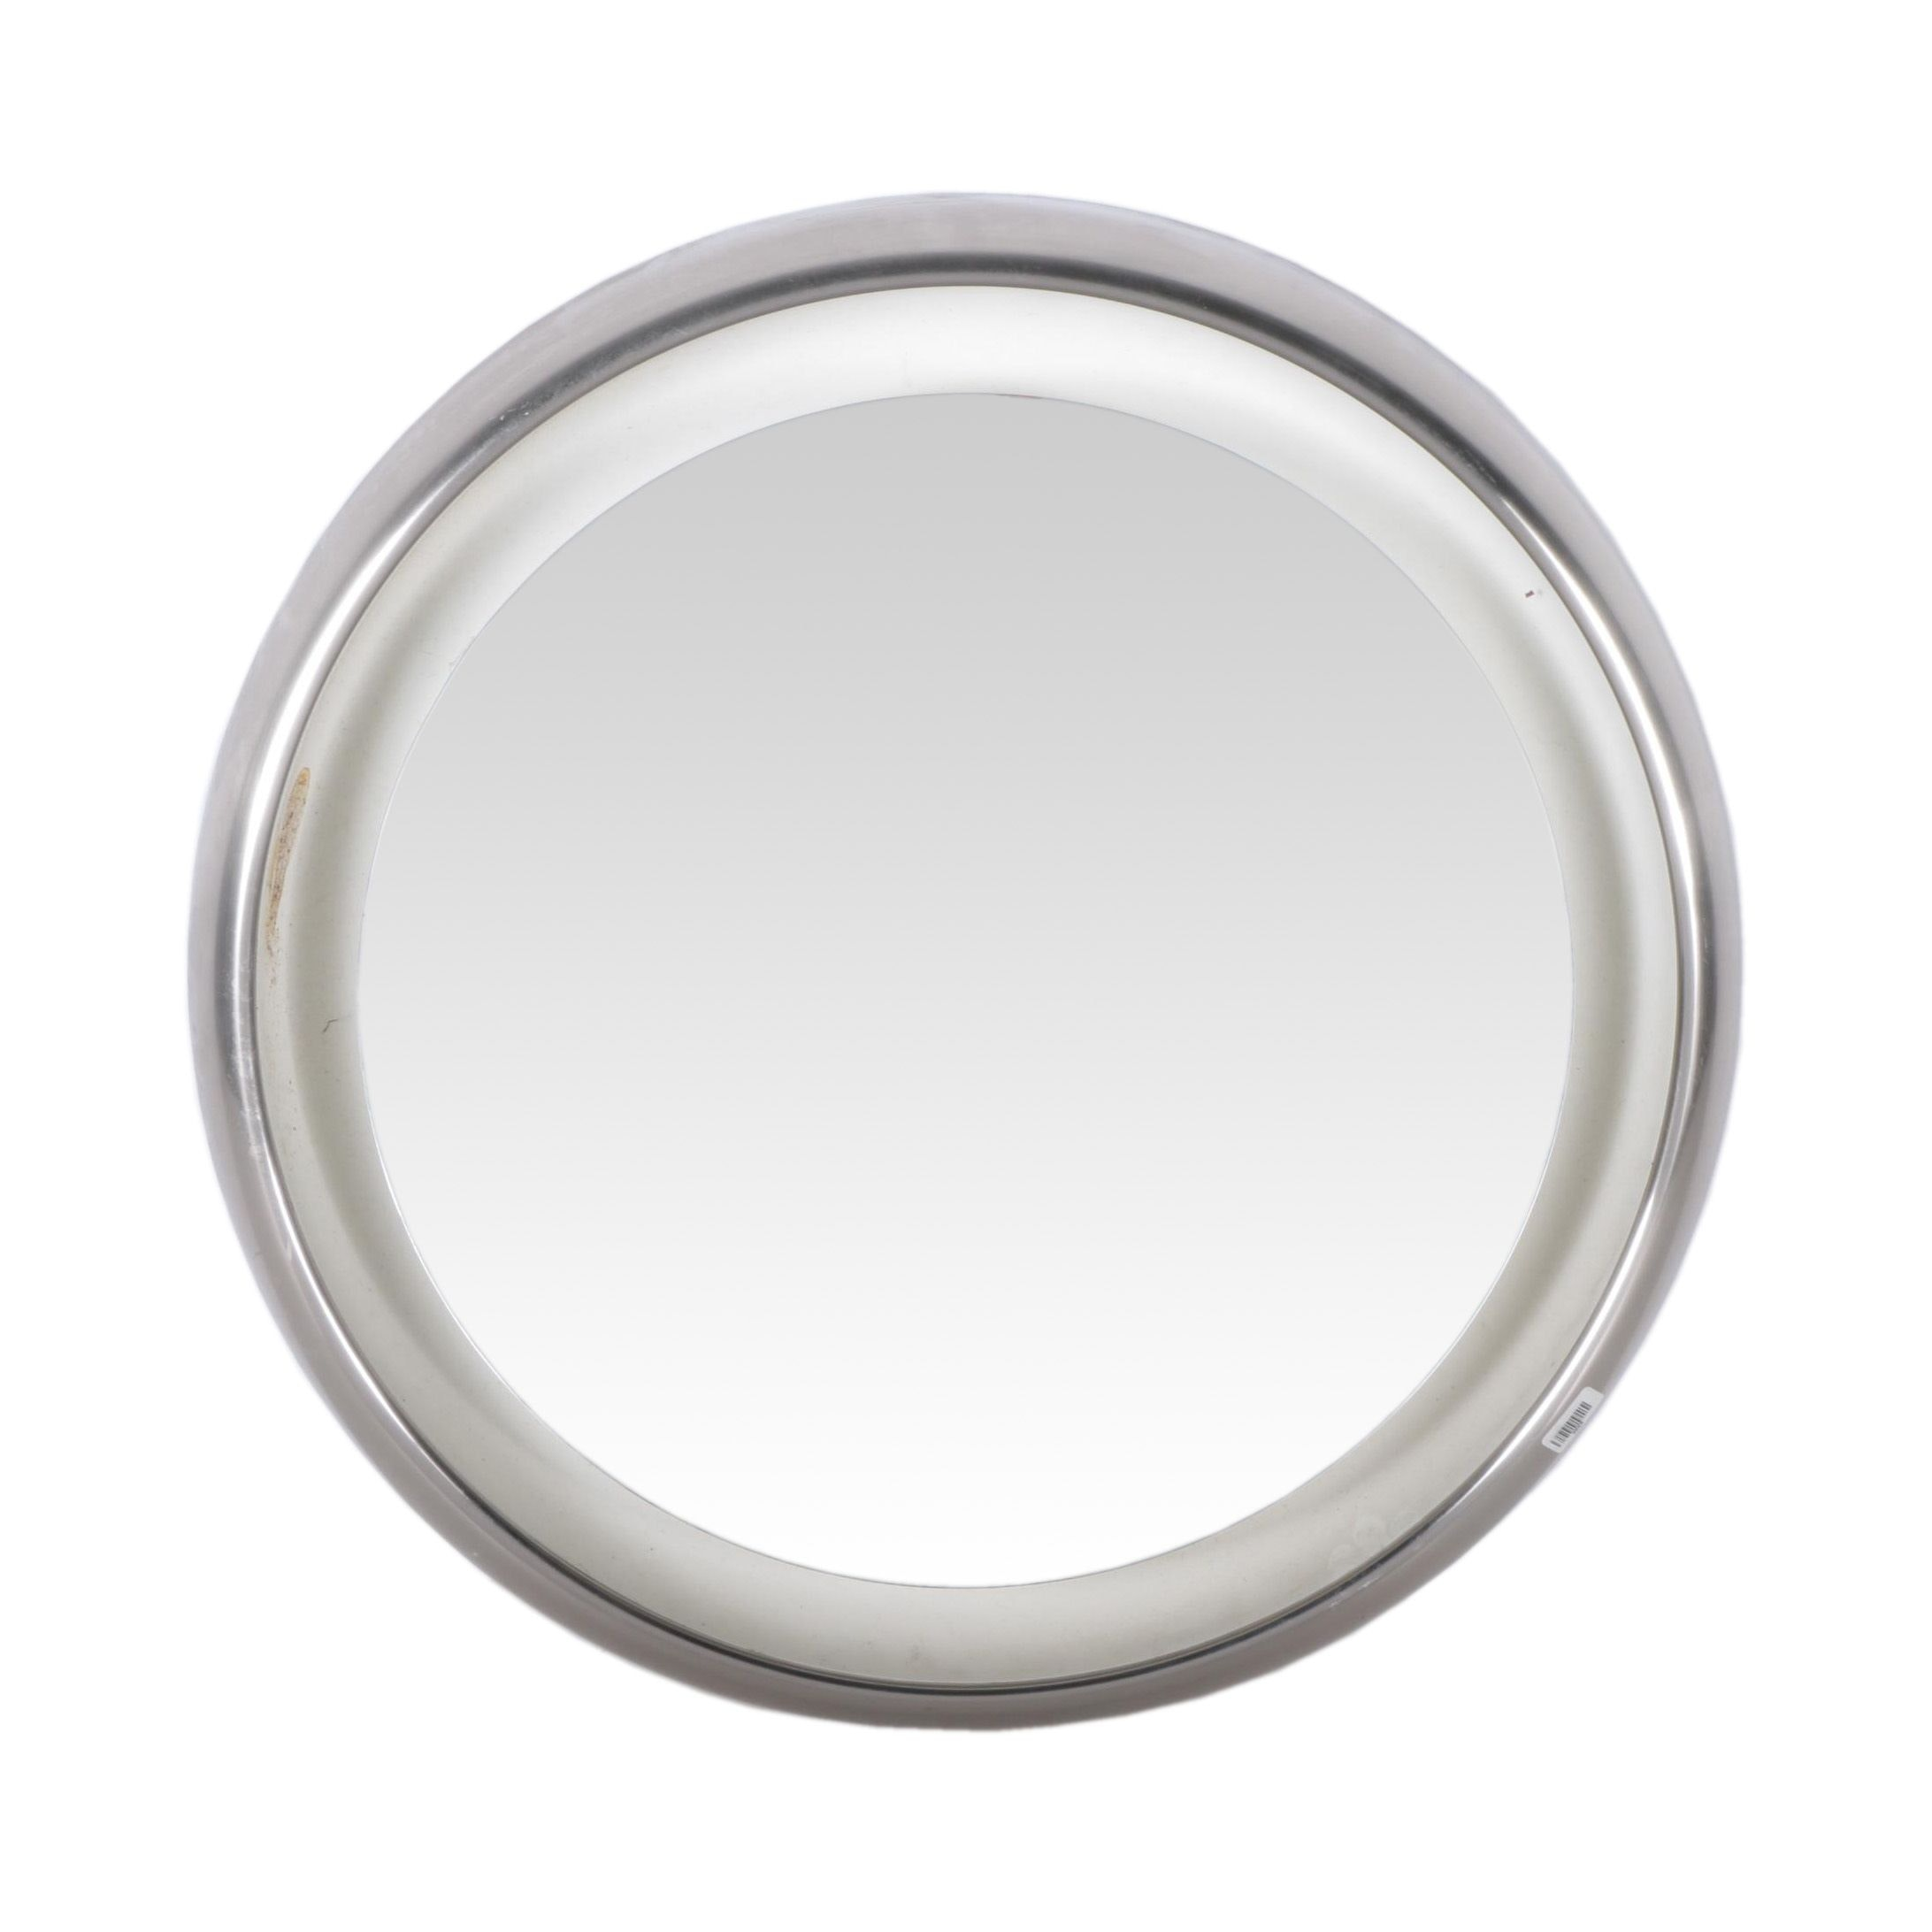 Circular Wall Mirror Light